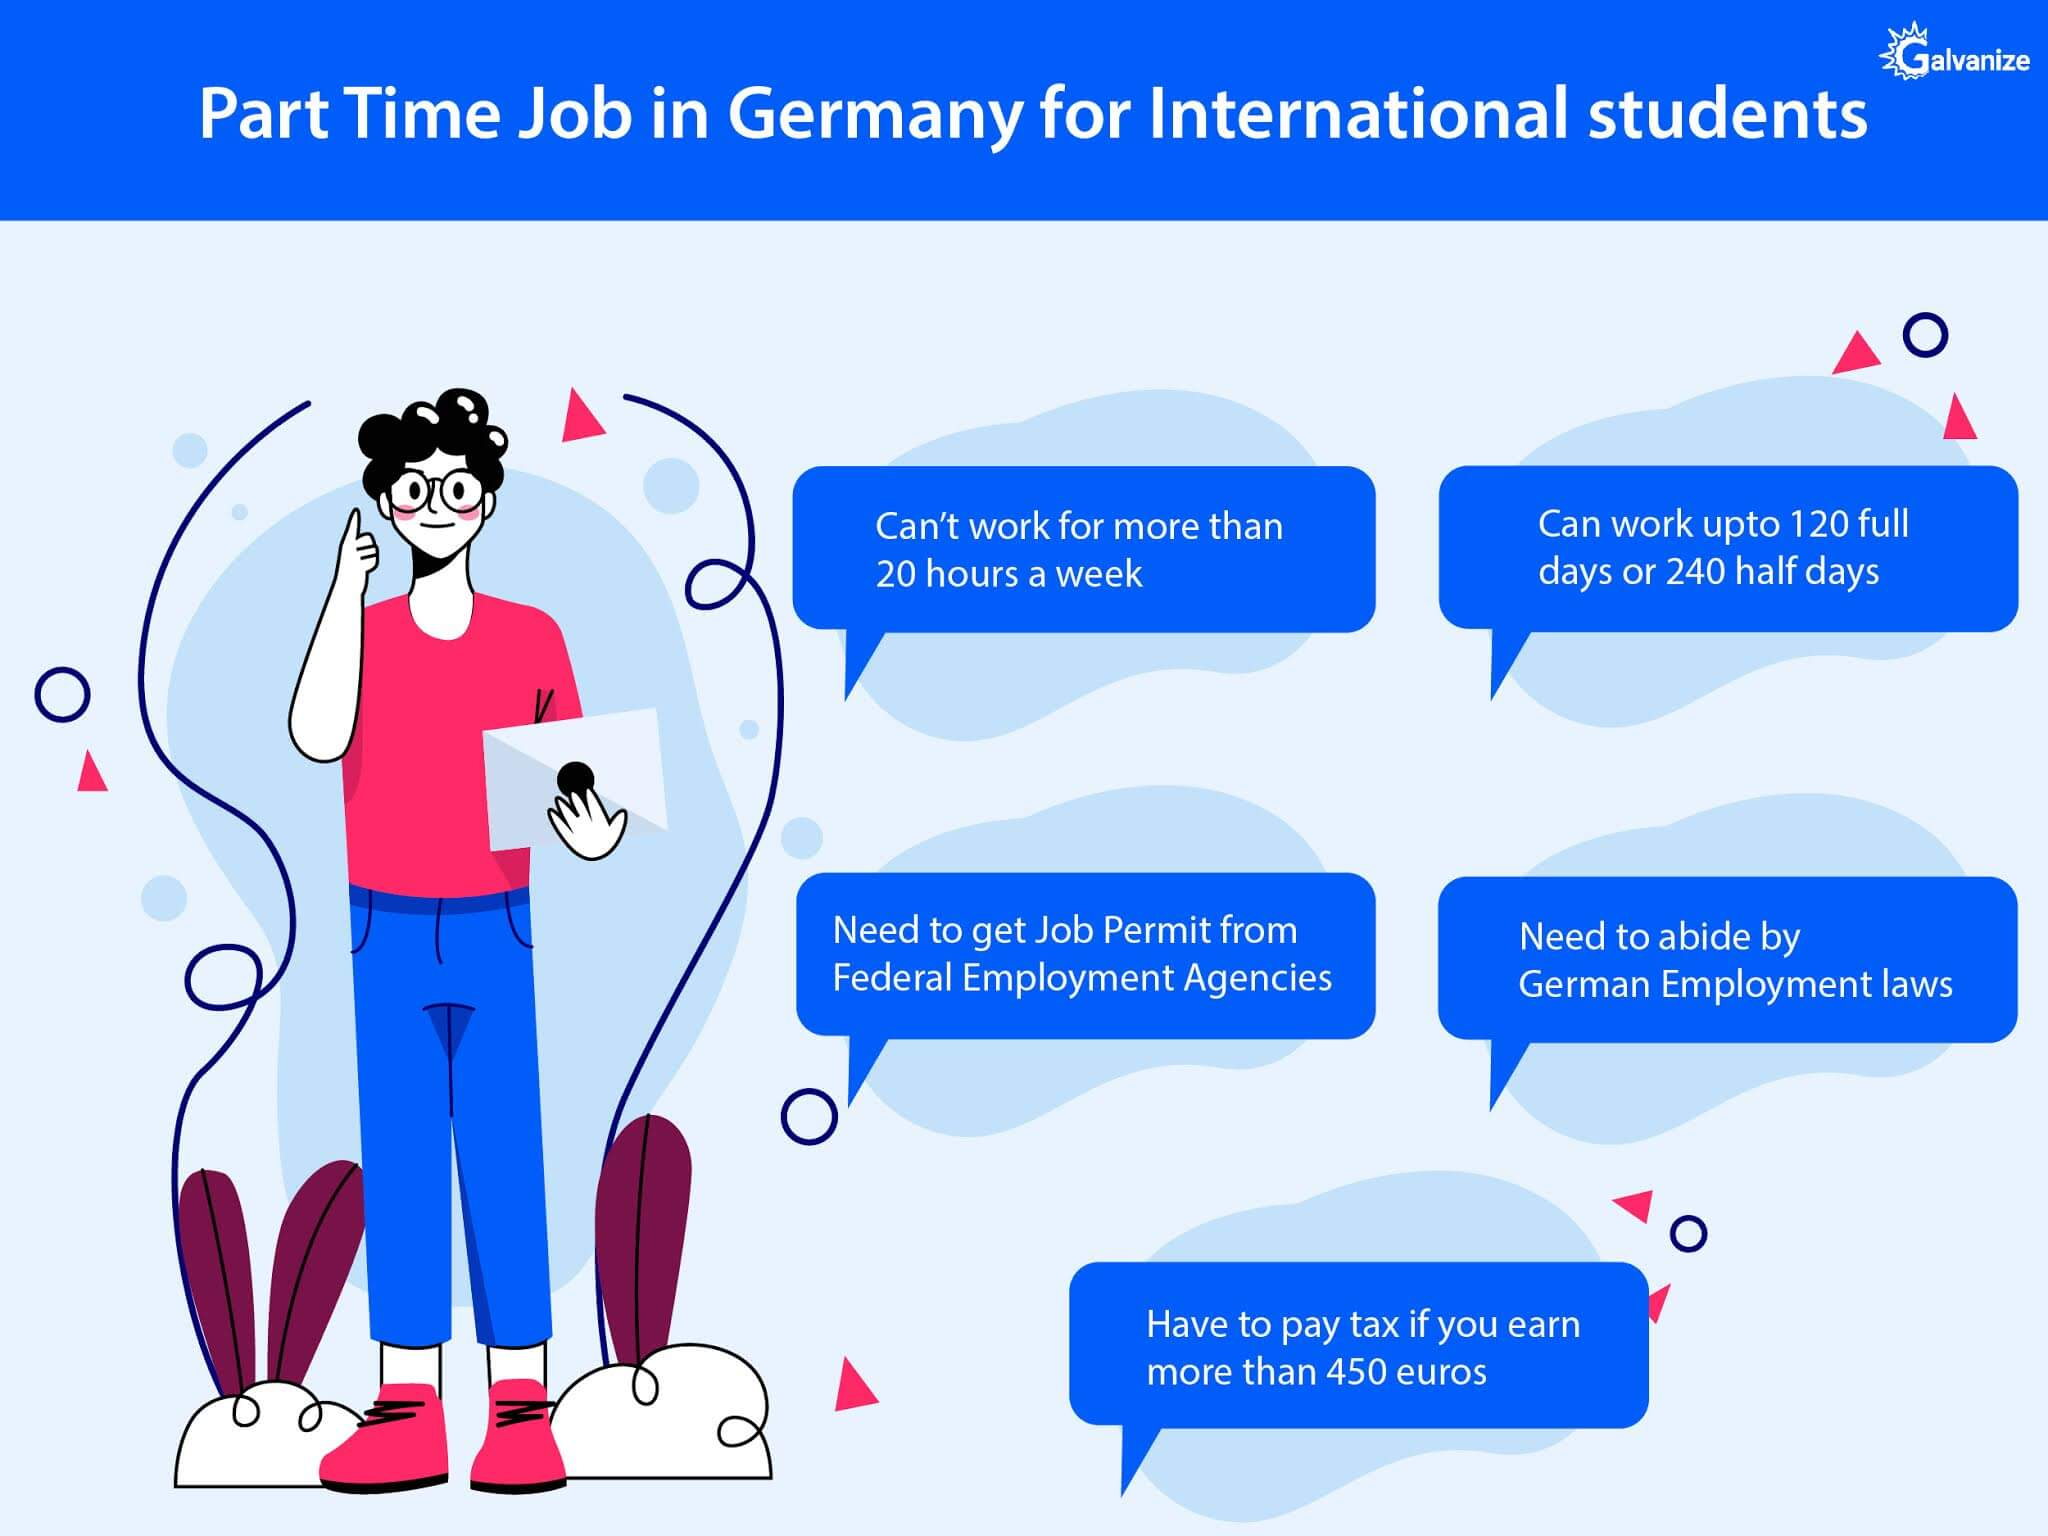 Part time job in germany for international students (1)